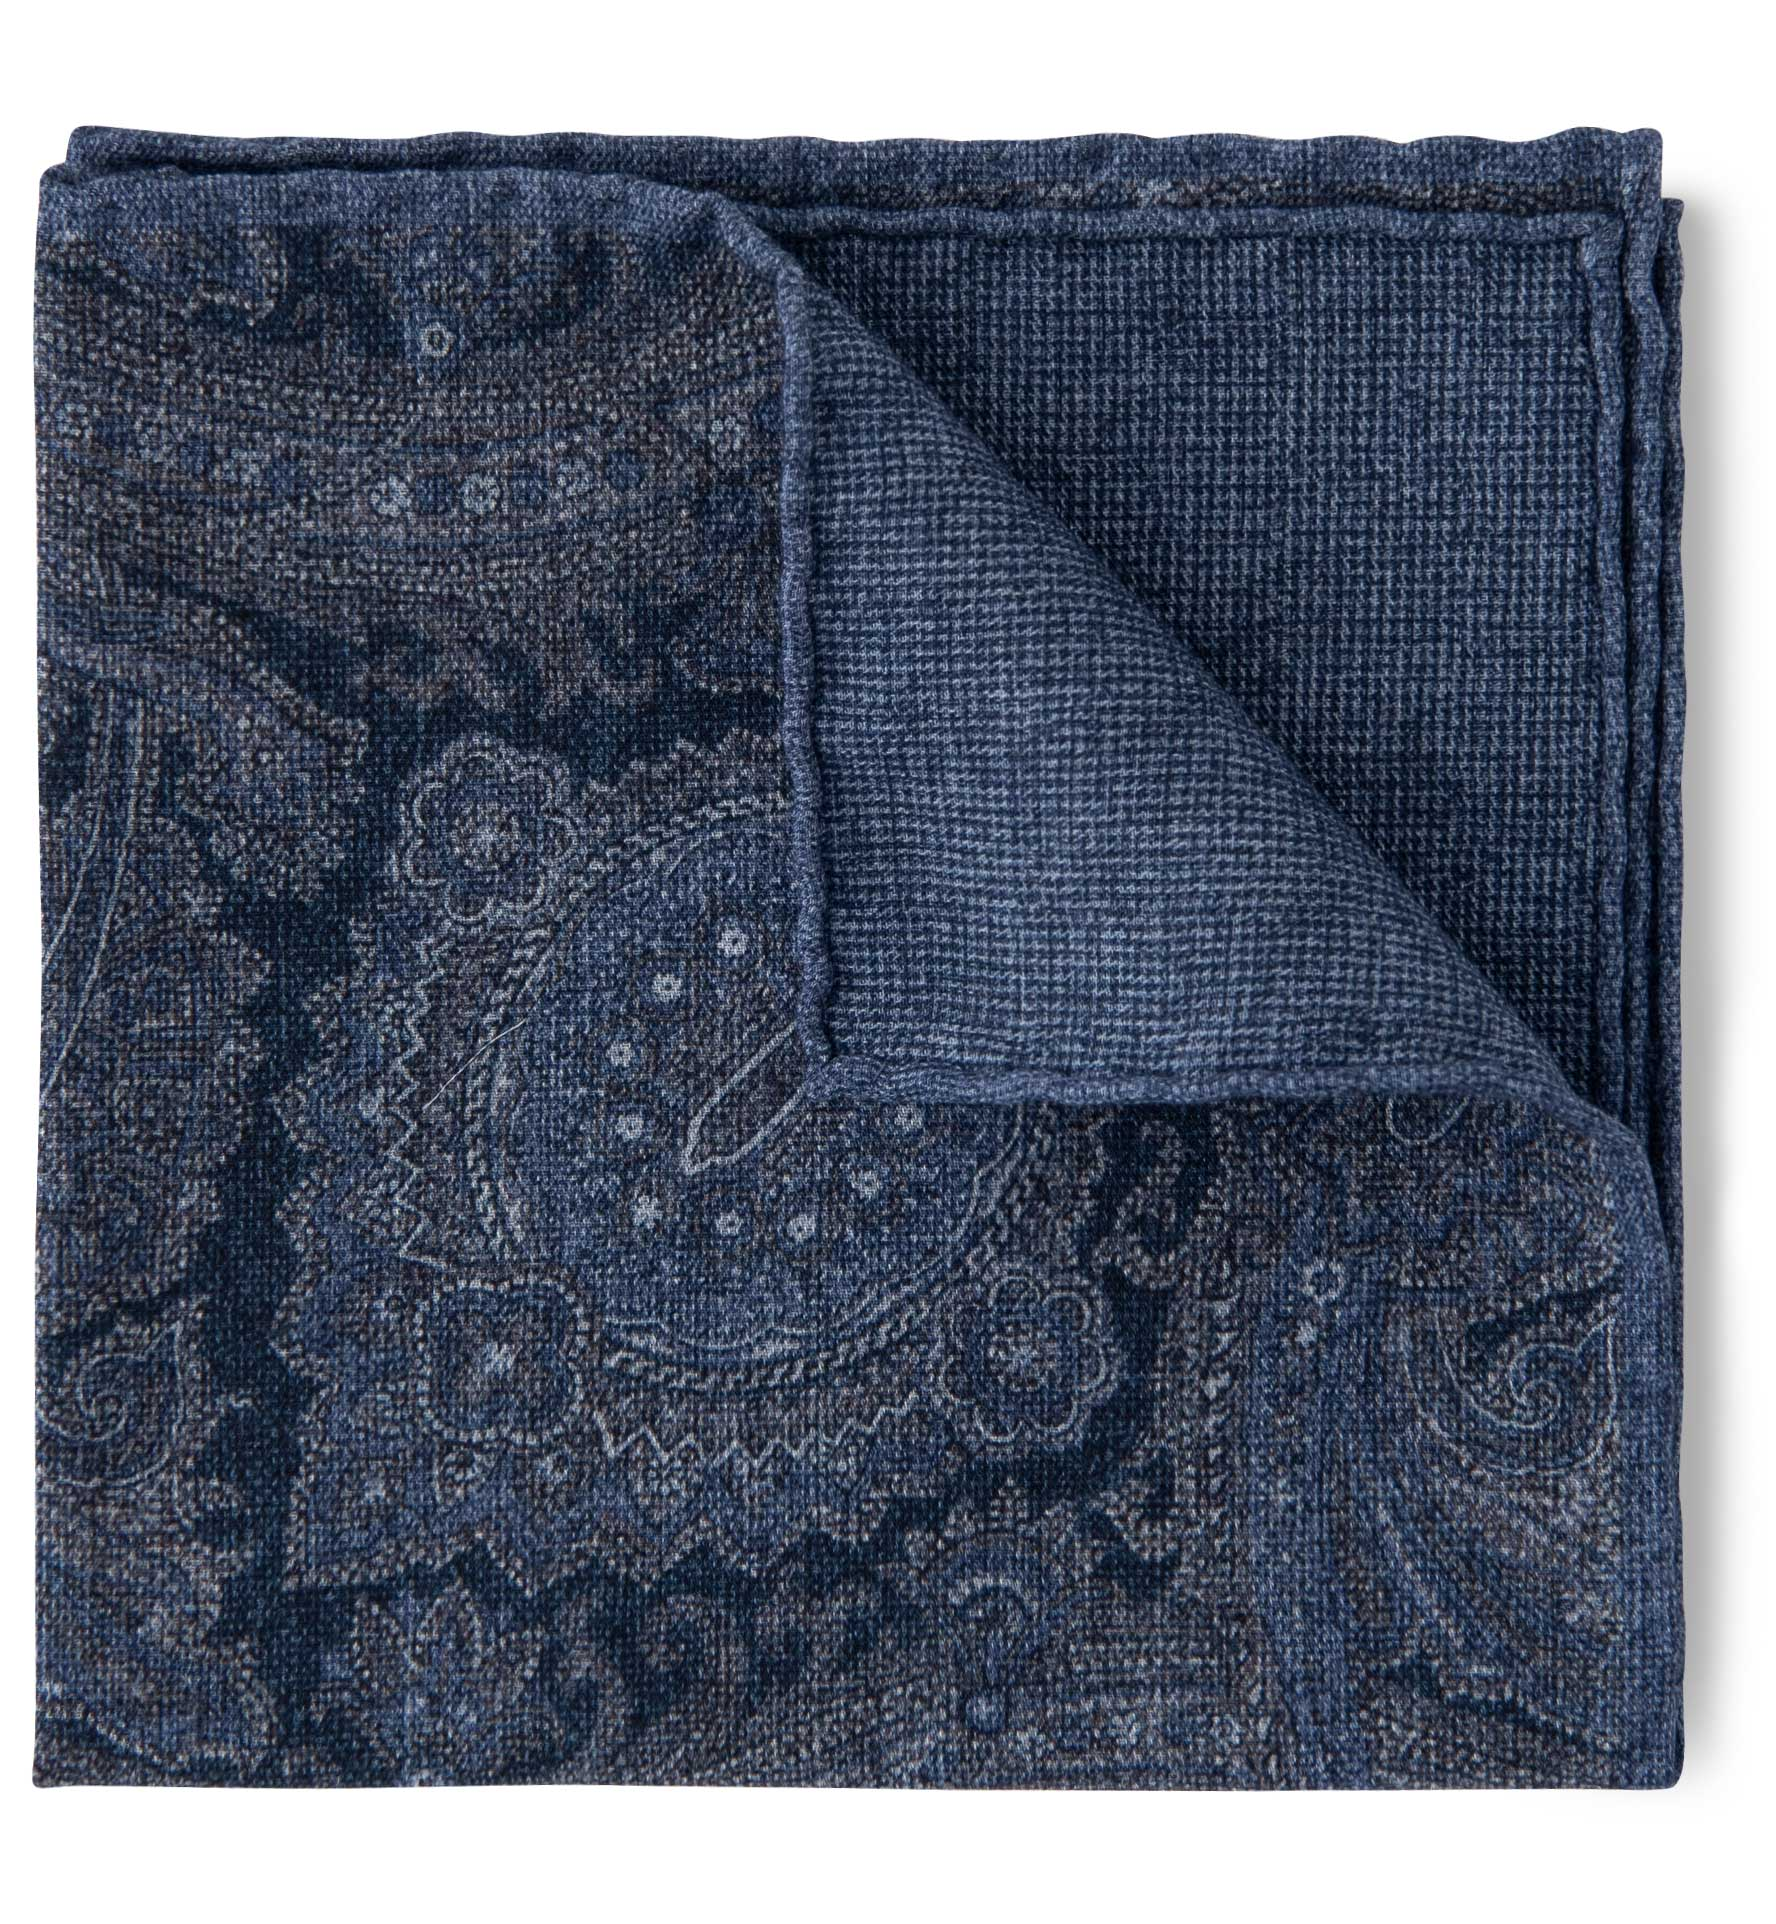 Zoom Image of Slate Paisley Wool and Cotton Pocket Square